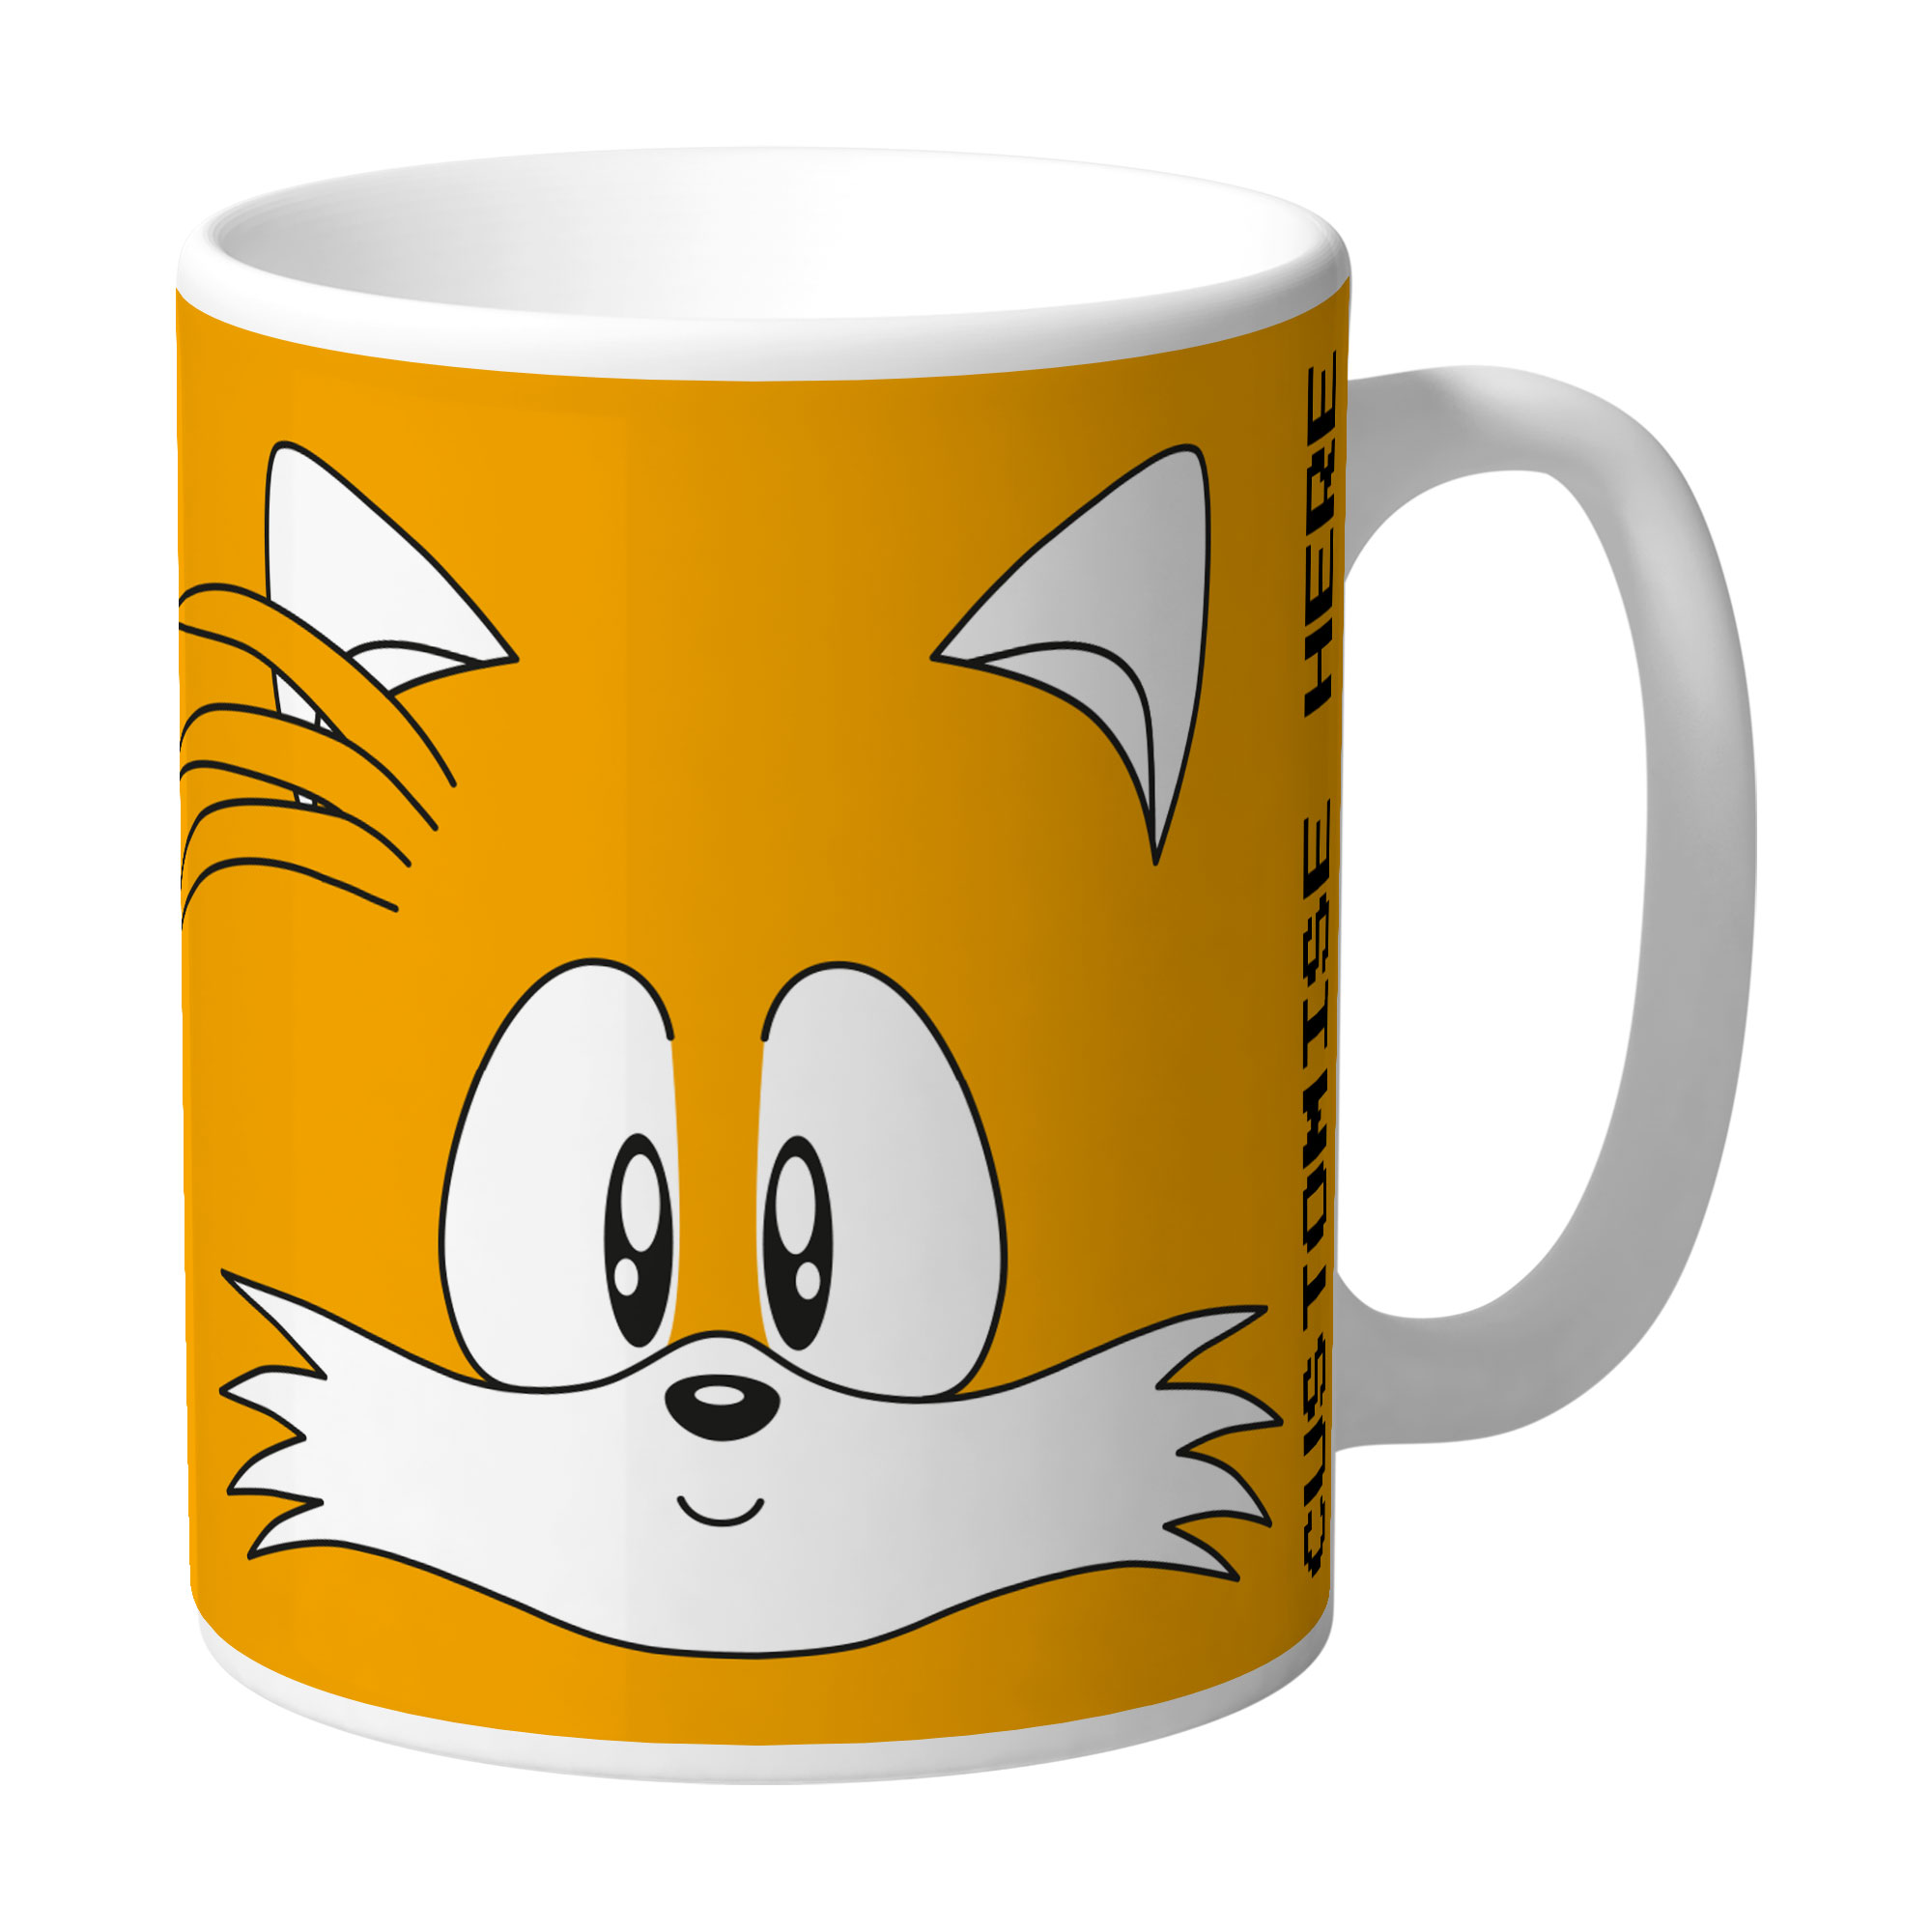 Mug - Tails Face - Classic Sonic